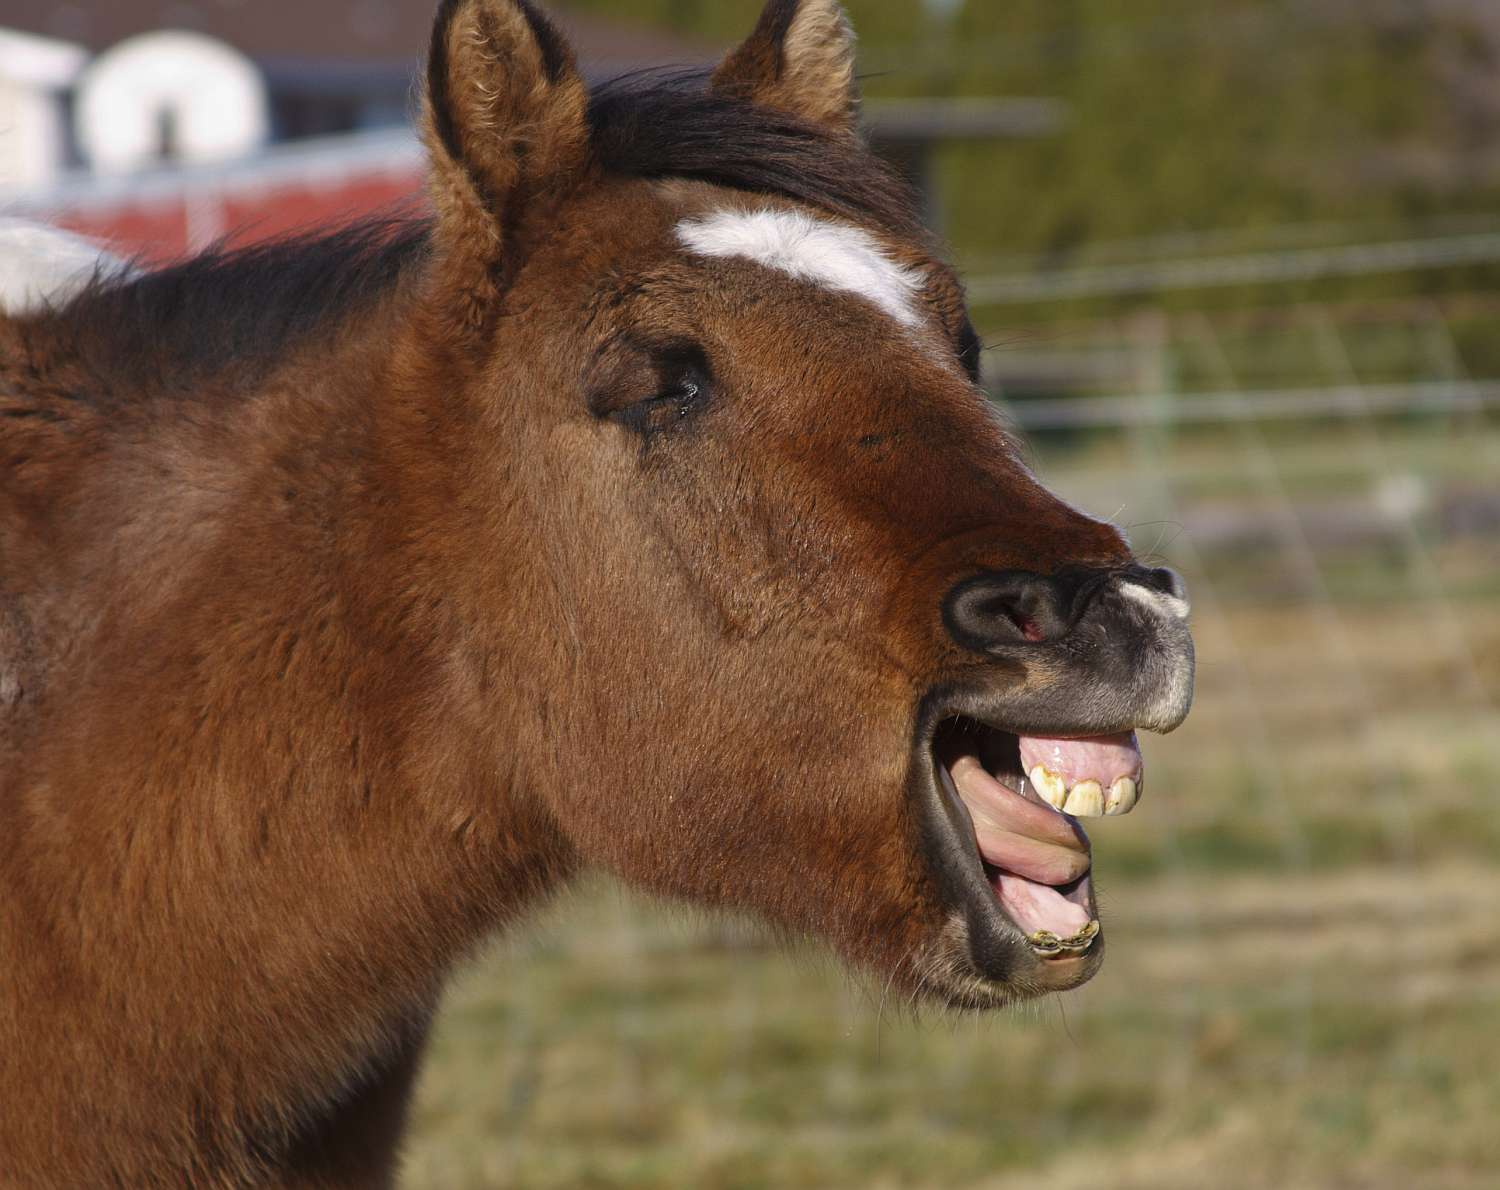 Yawning yearling colt